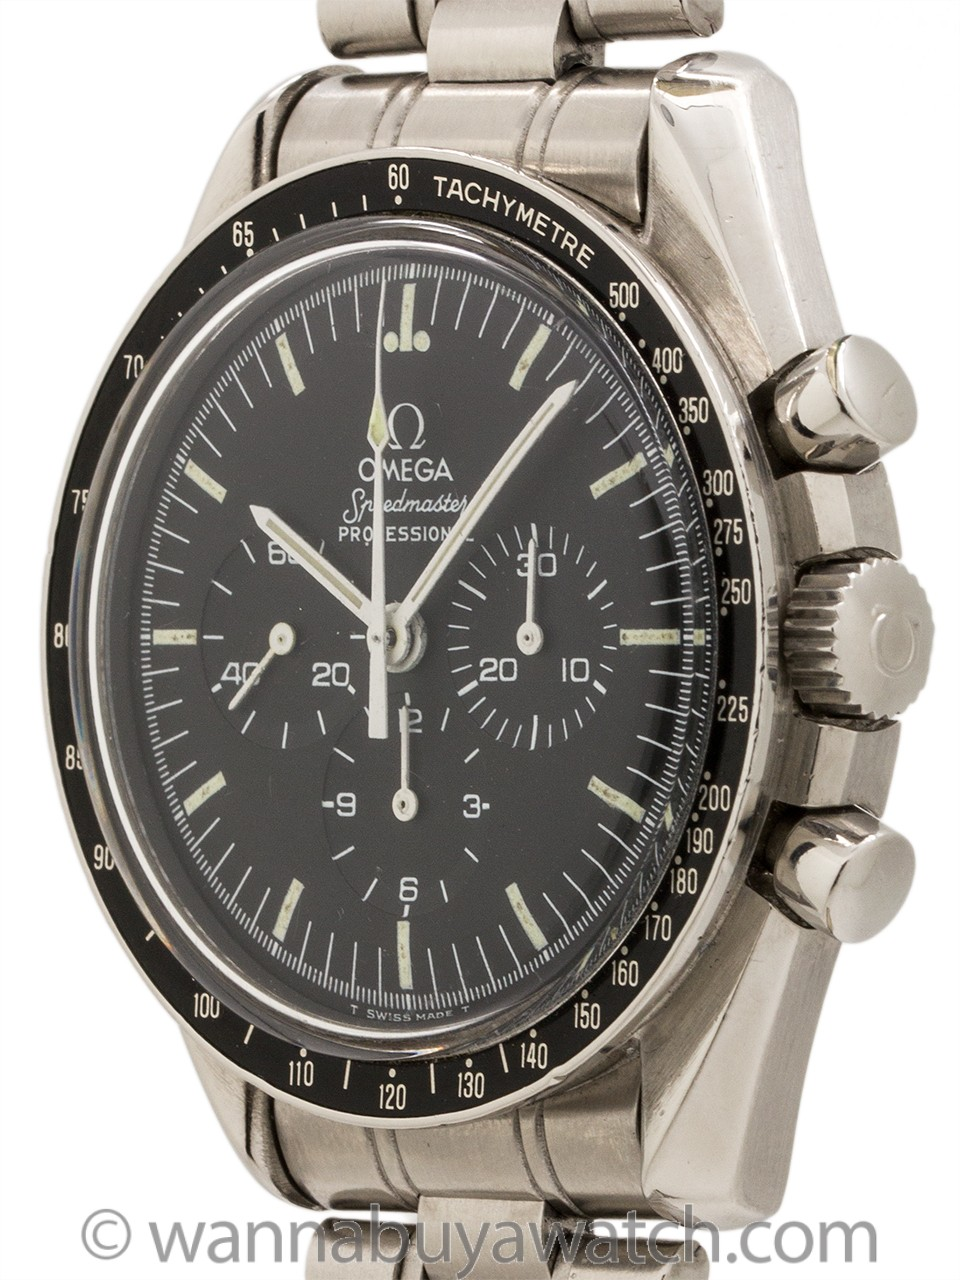 Omega Speedmaster Man on the Moon ref 145.0022 circa 1983